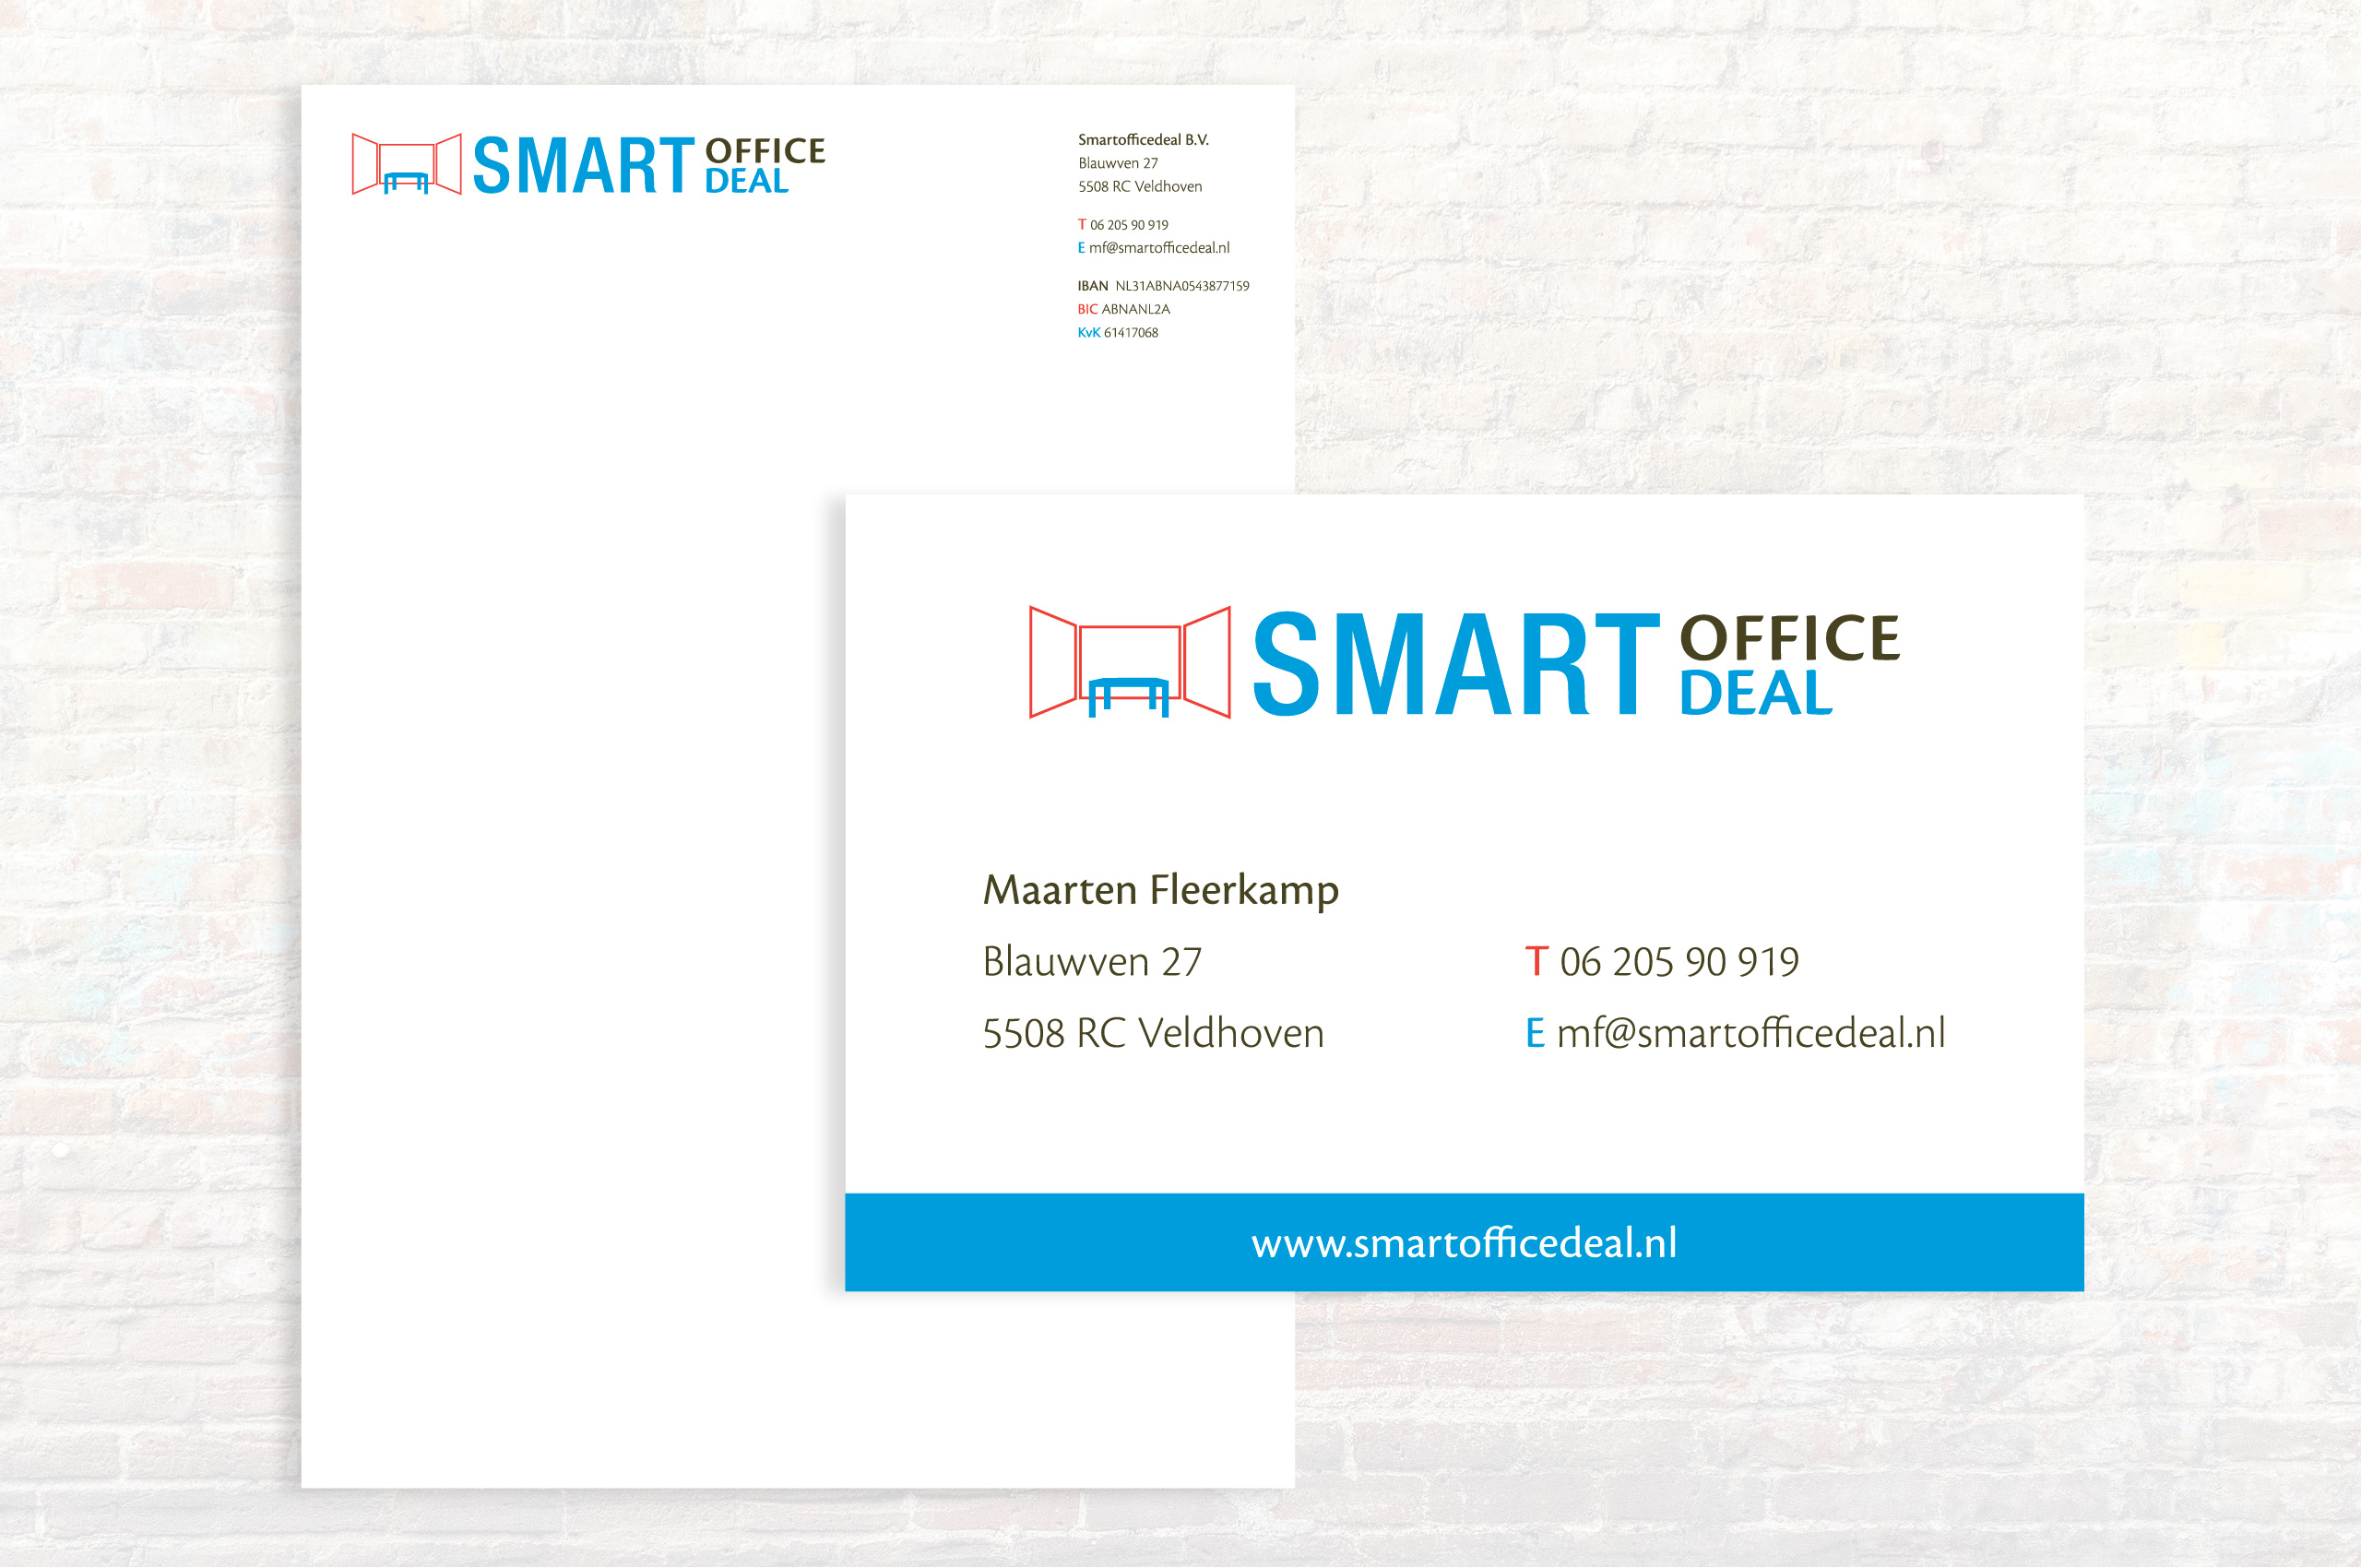 Smart Office Deal kaartje briefpapier